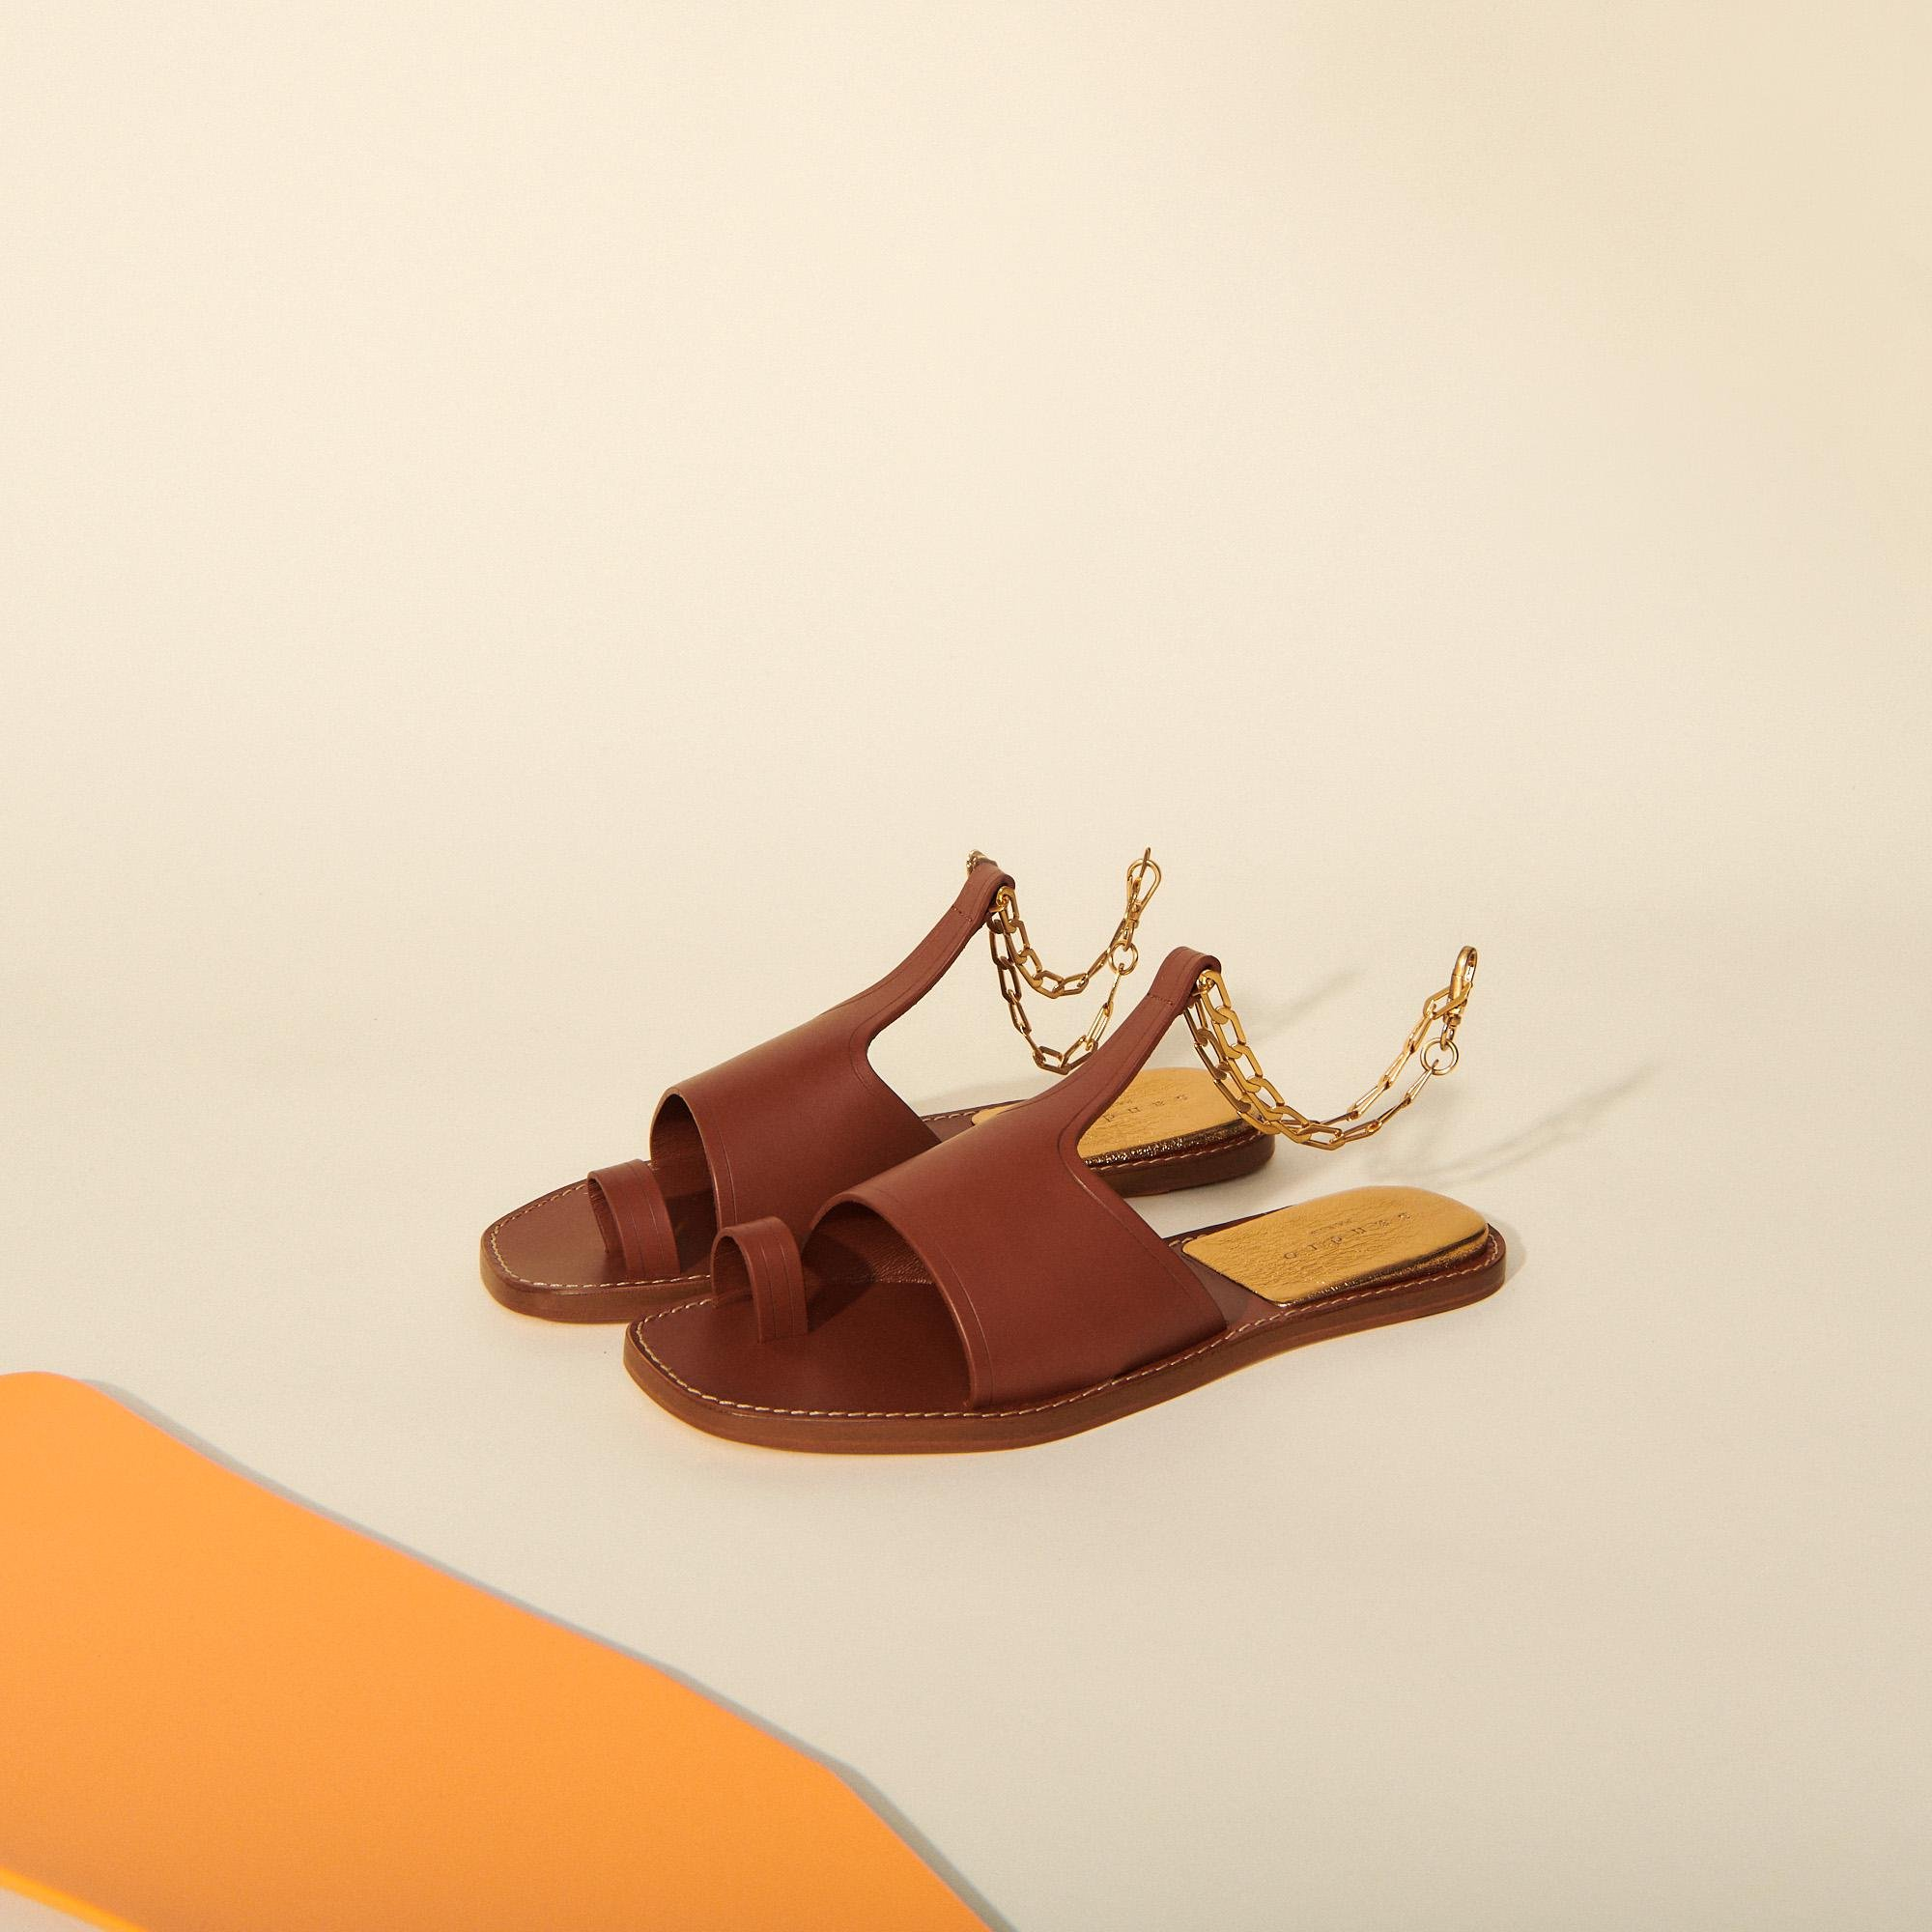 Leather sandals with chain detail